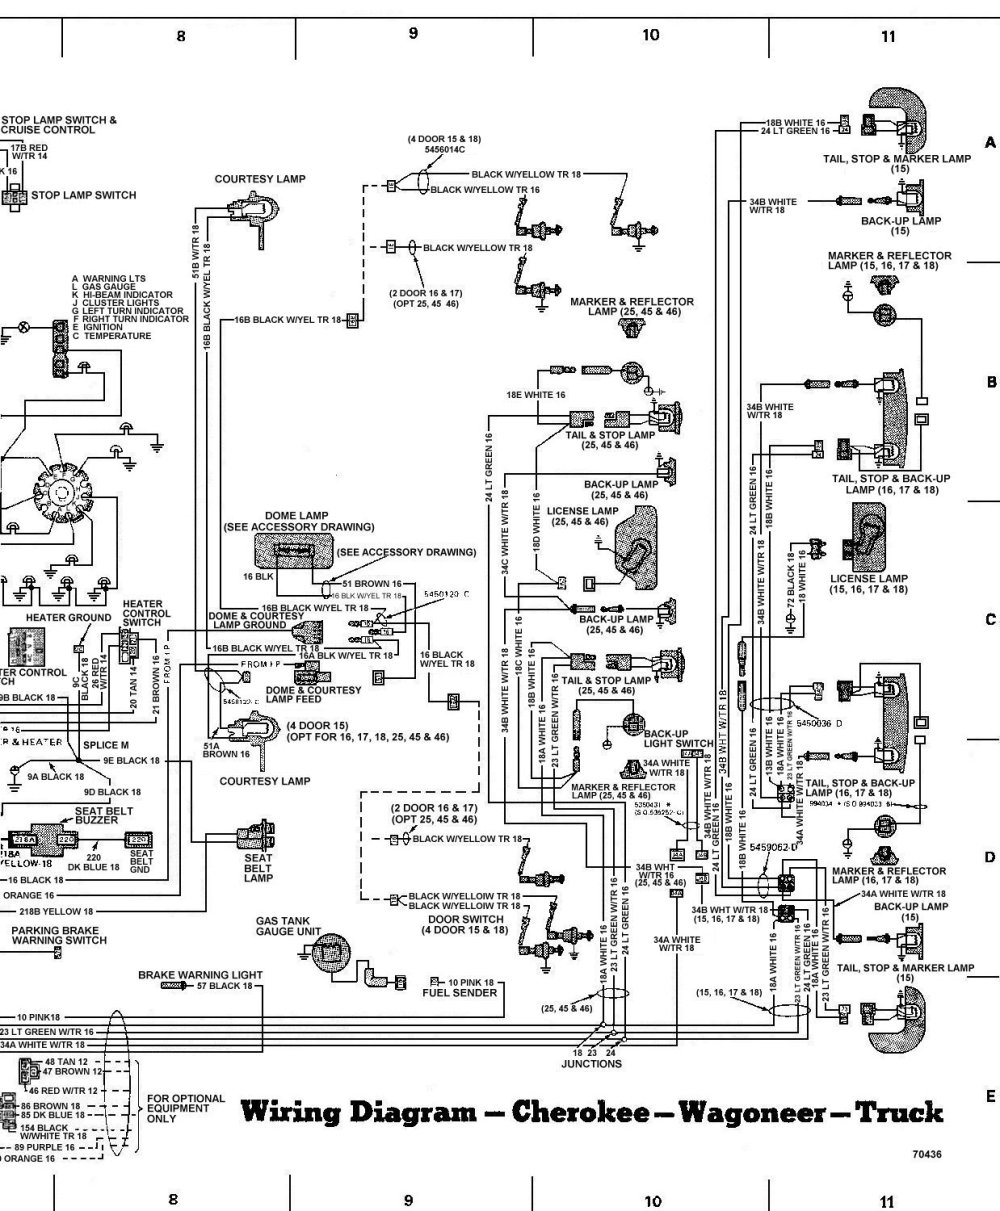 medium resolution of 86 jeep wiring diagram wiring diagram for you jeep wrangler instrument panel diagram jeep wrangler wiring diagram 1986